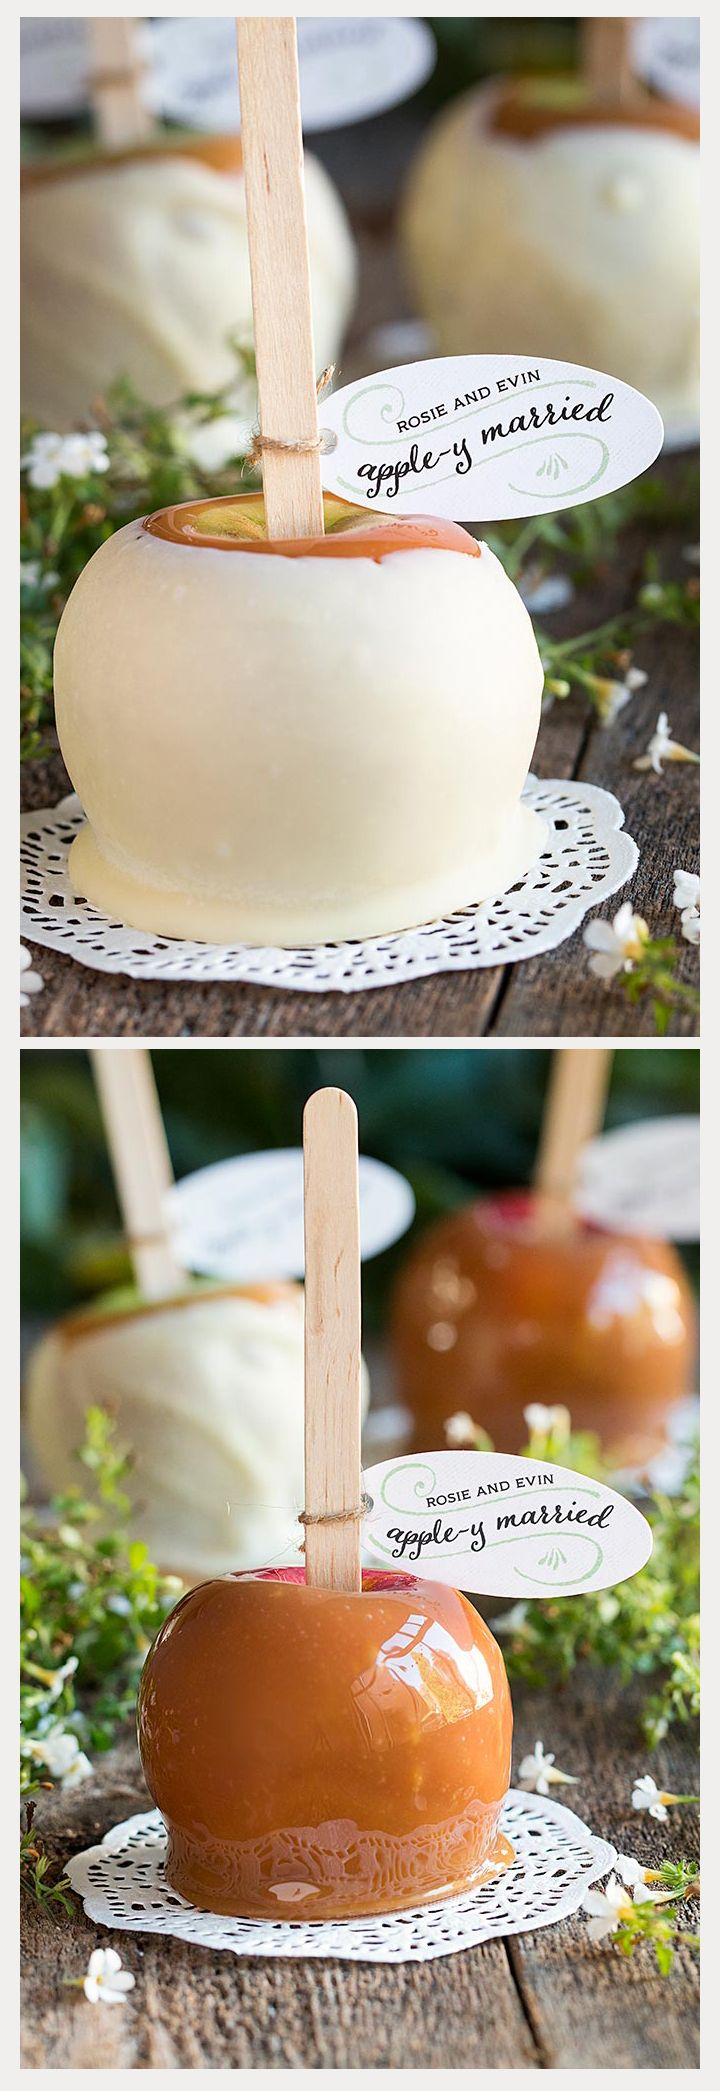 """25 Tasty Caramel and Candy Apples - """"Apple-y Married"""" caramel apple tags - love these!"""